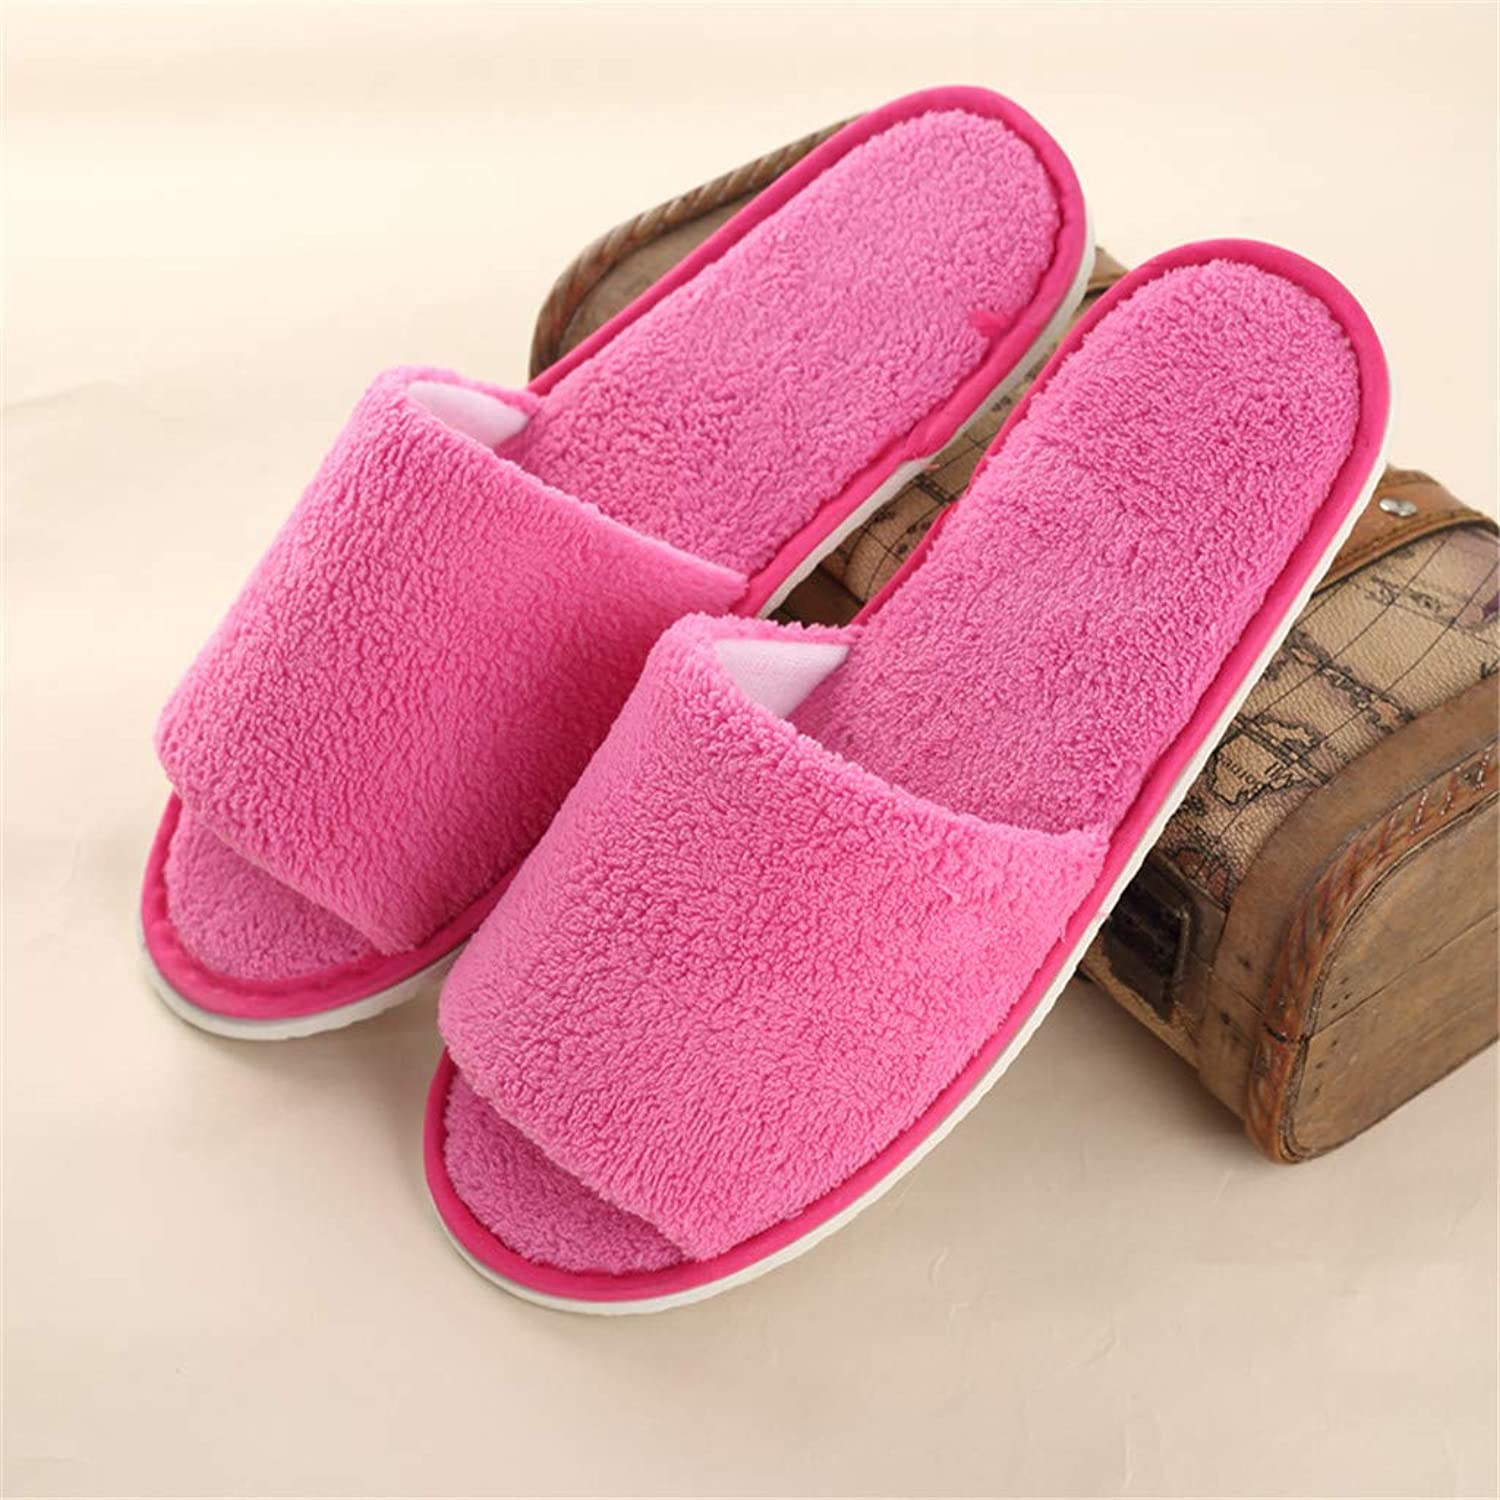 10 Pairs Disposable Spa Slippers - Coral Fleece Comfortable and Non-Slip - Perfect for Home, Hotel Commercial Use,Pink,Open